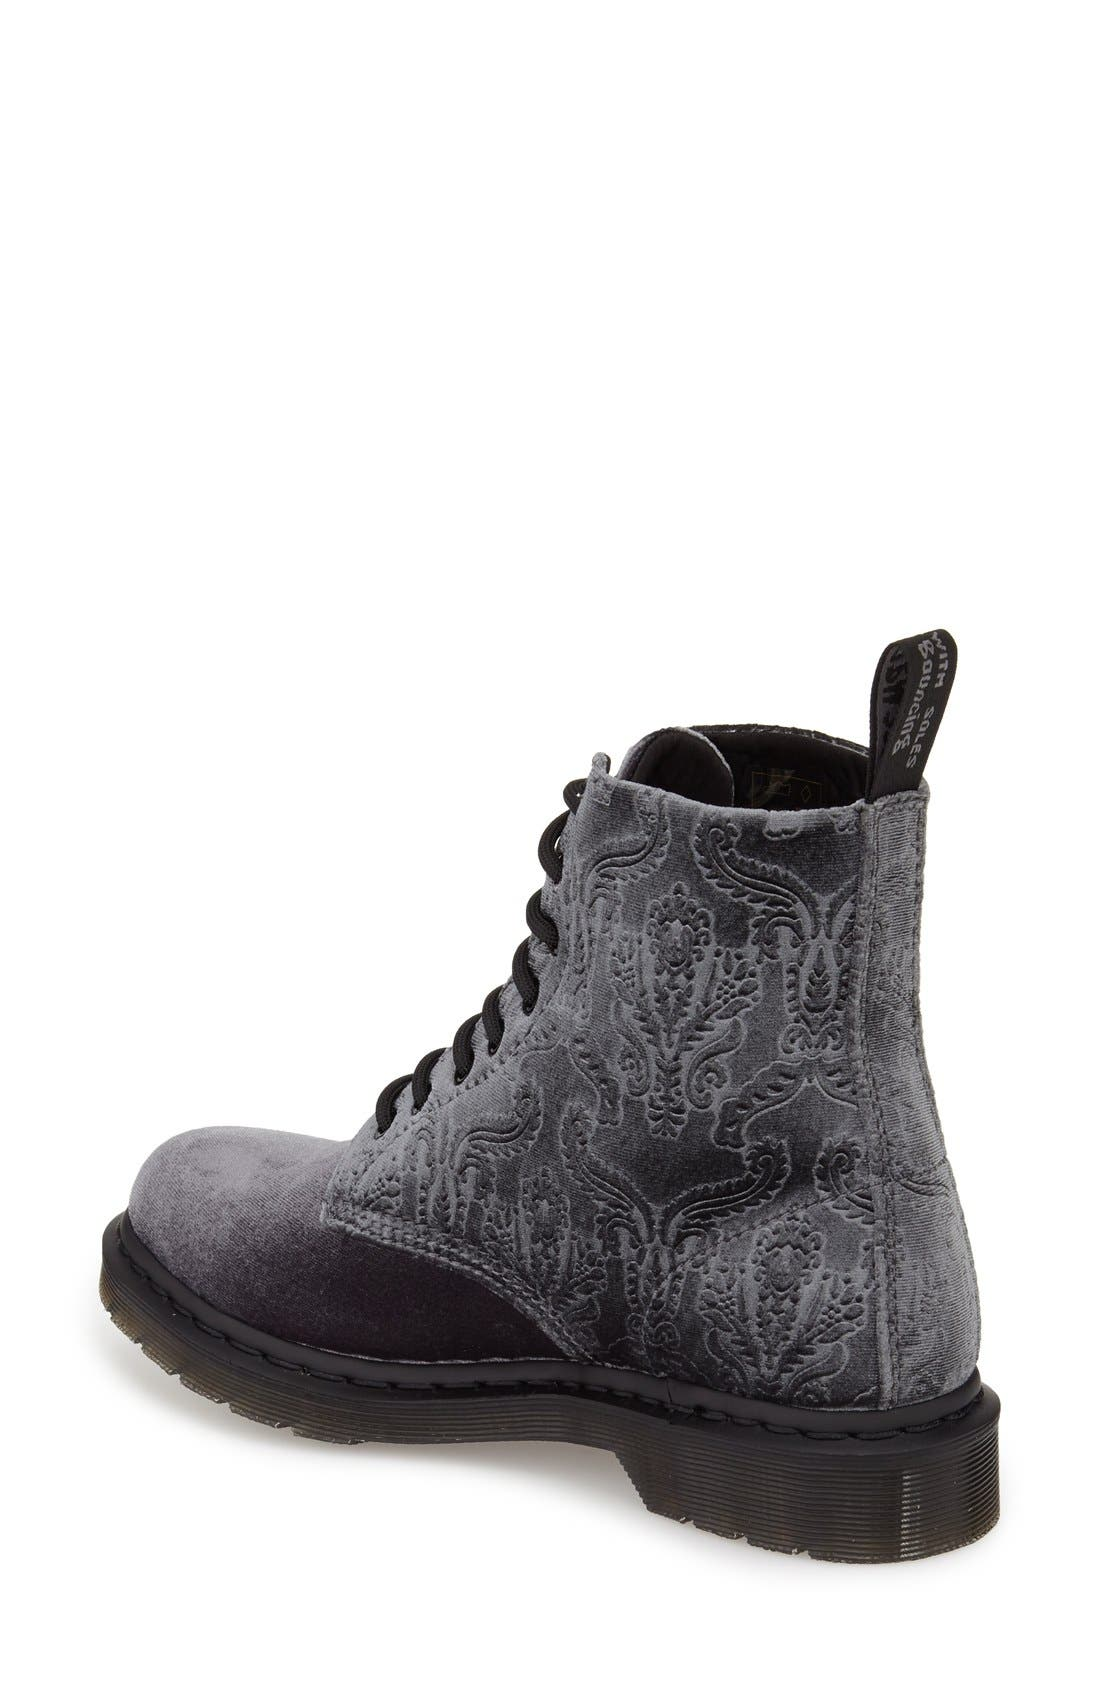 DR. MARTENS, 'Pascal' Hiking Boot, Alternate thumbnail 3, color, 020